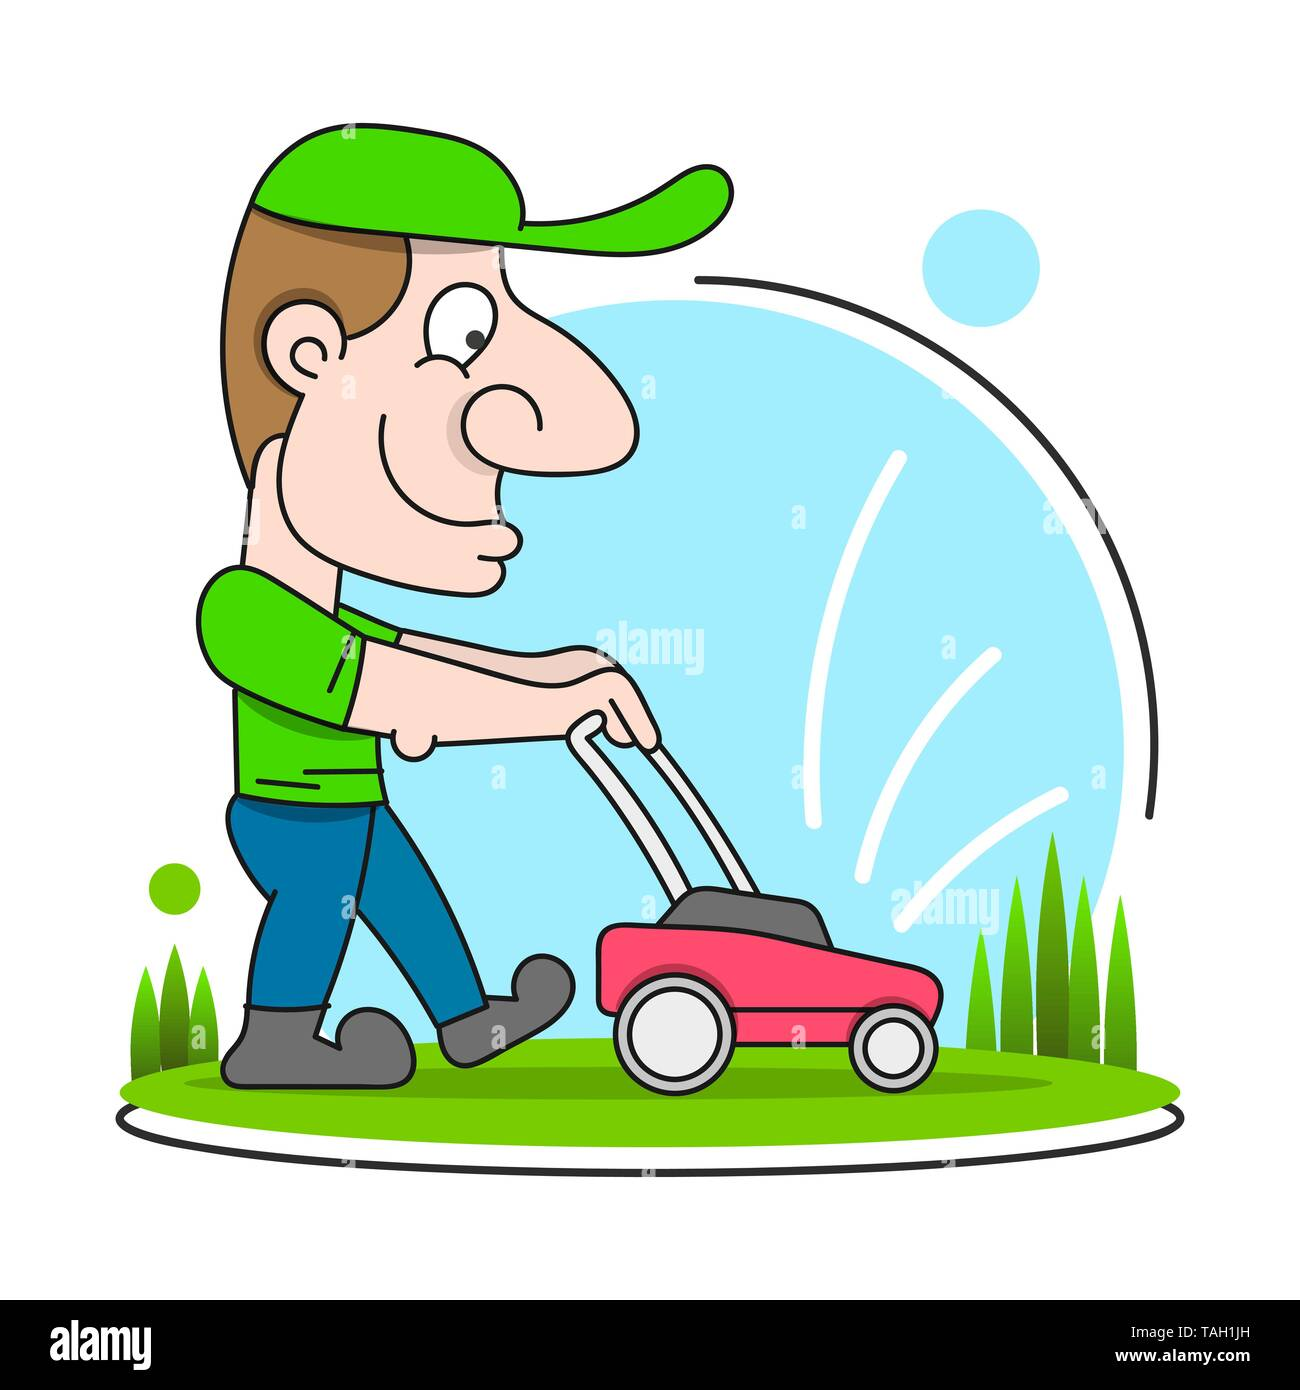 Illustration Of A Gardener Wearing Hat And Overalls With Lawnmower Mowing Lawn Viewed From Front Set On Isolated - Stock Image